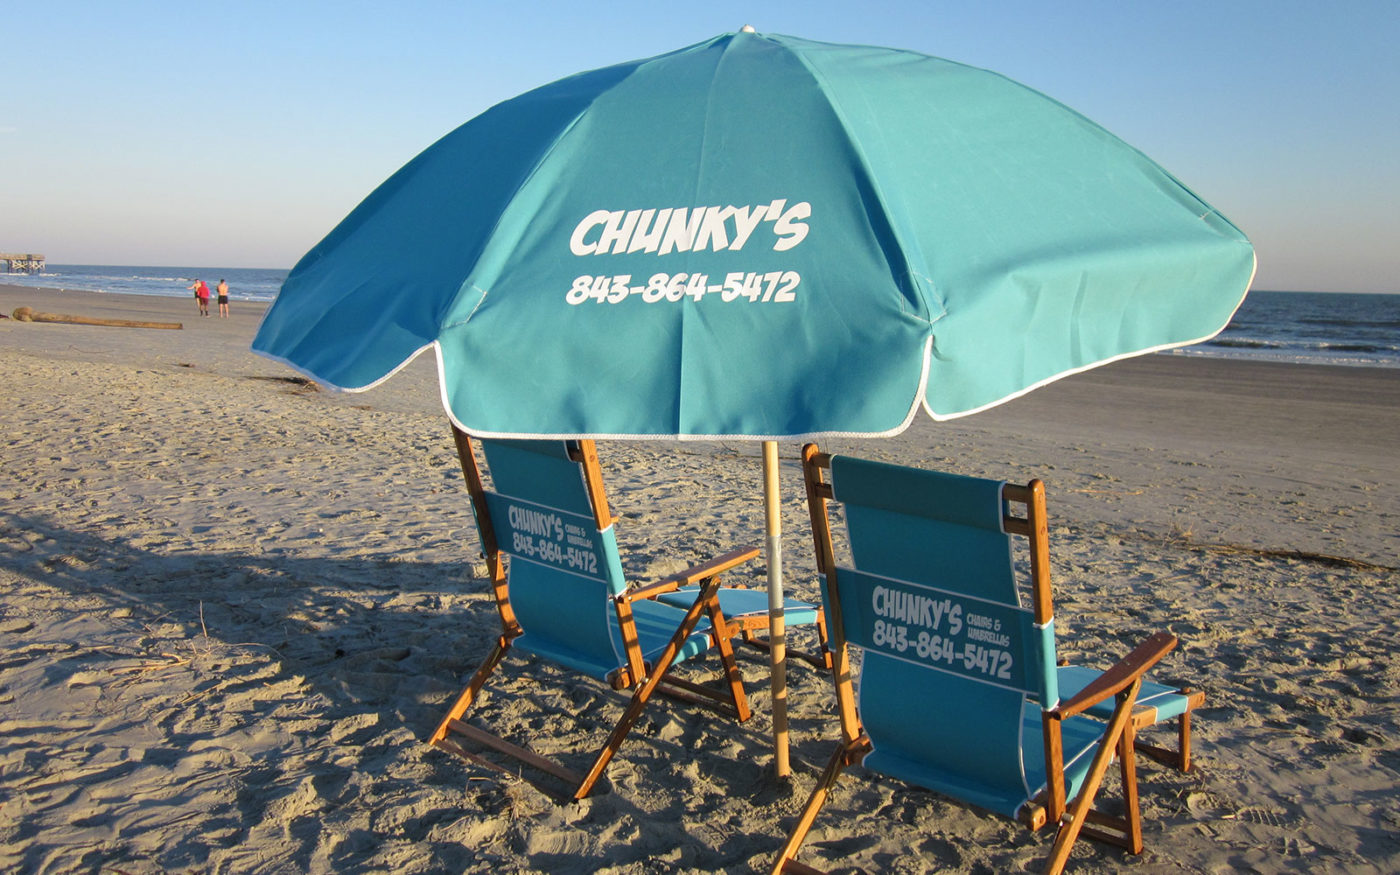 Chunky S Chairs And Umbrellas Beach Chair And Umbrella Rentals Isle Of Palms Sc